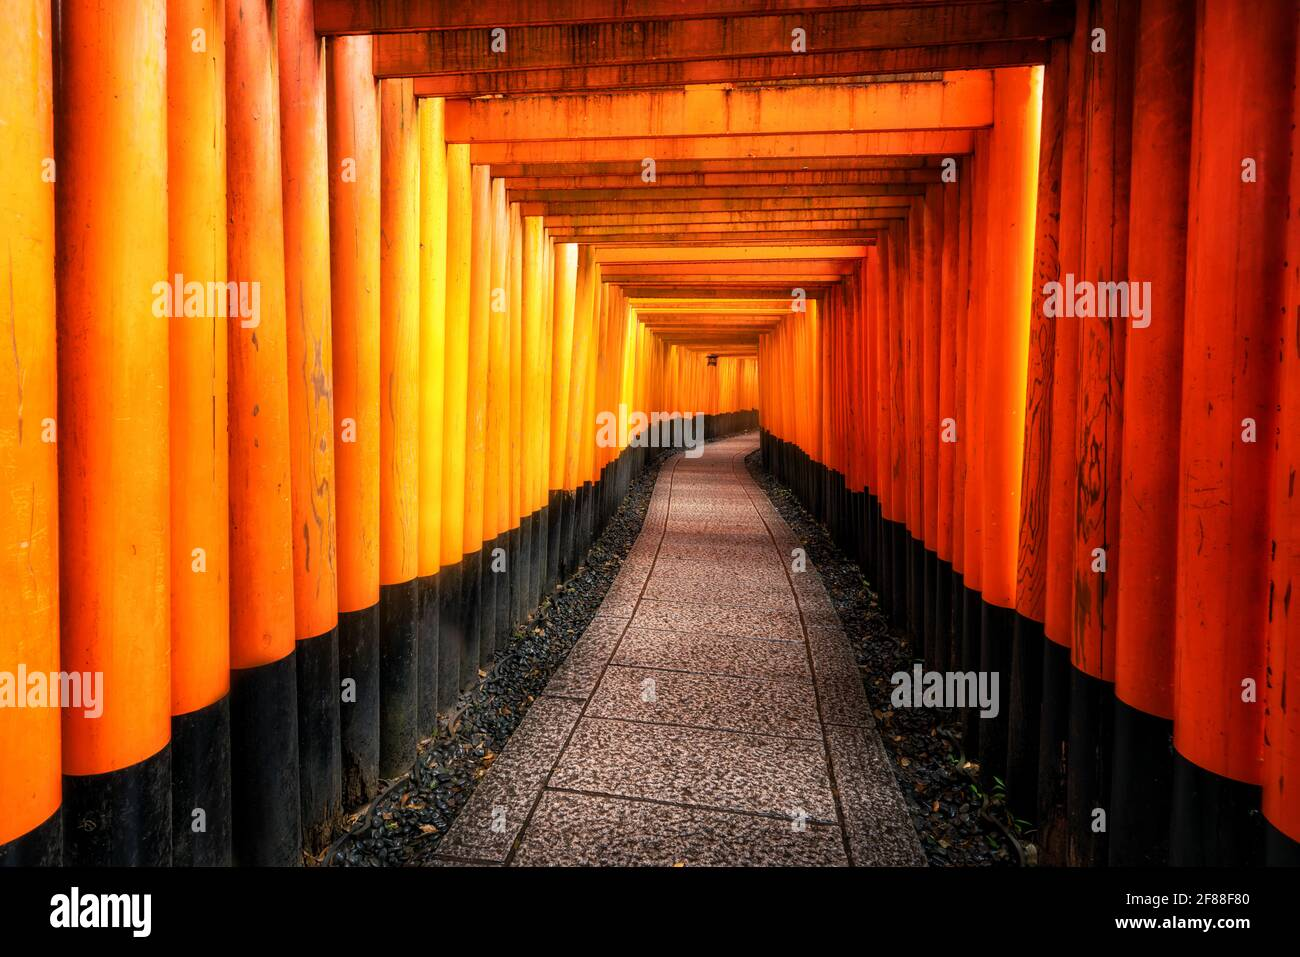 Red Torii gates in Fushimi Inari Shrine in Kyoto, Japan. It is the famous landmark and tourist travel destination of Kyoto. Stock Photo